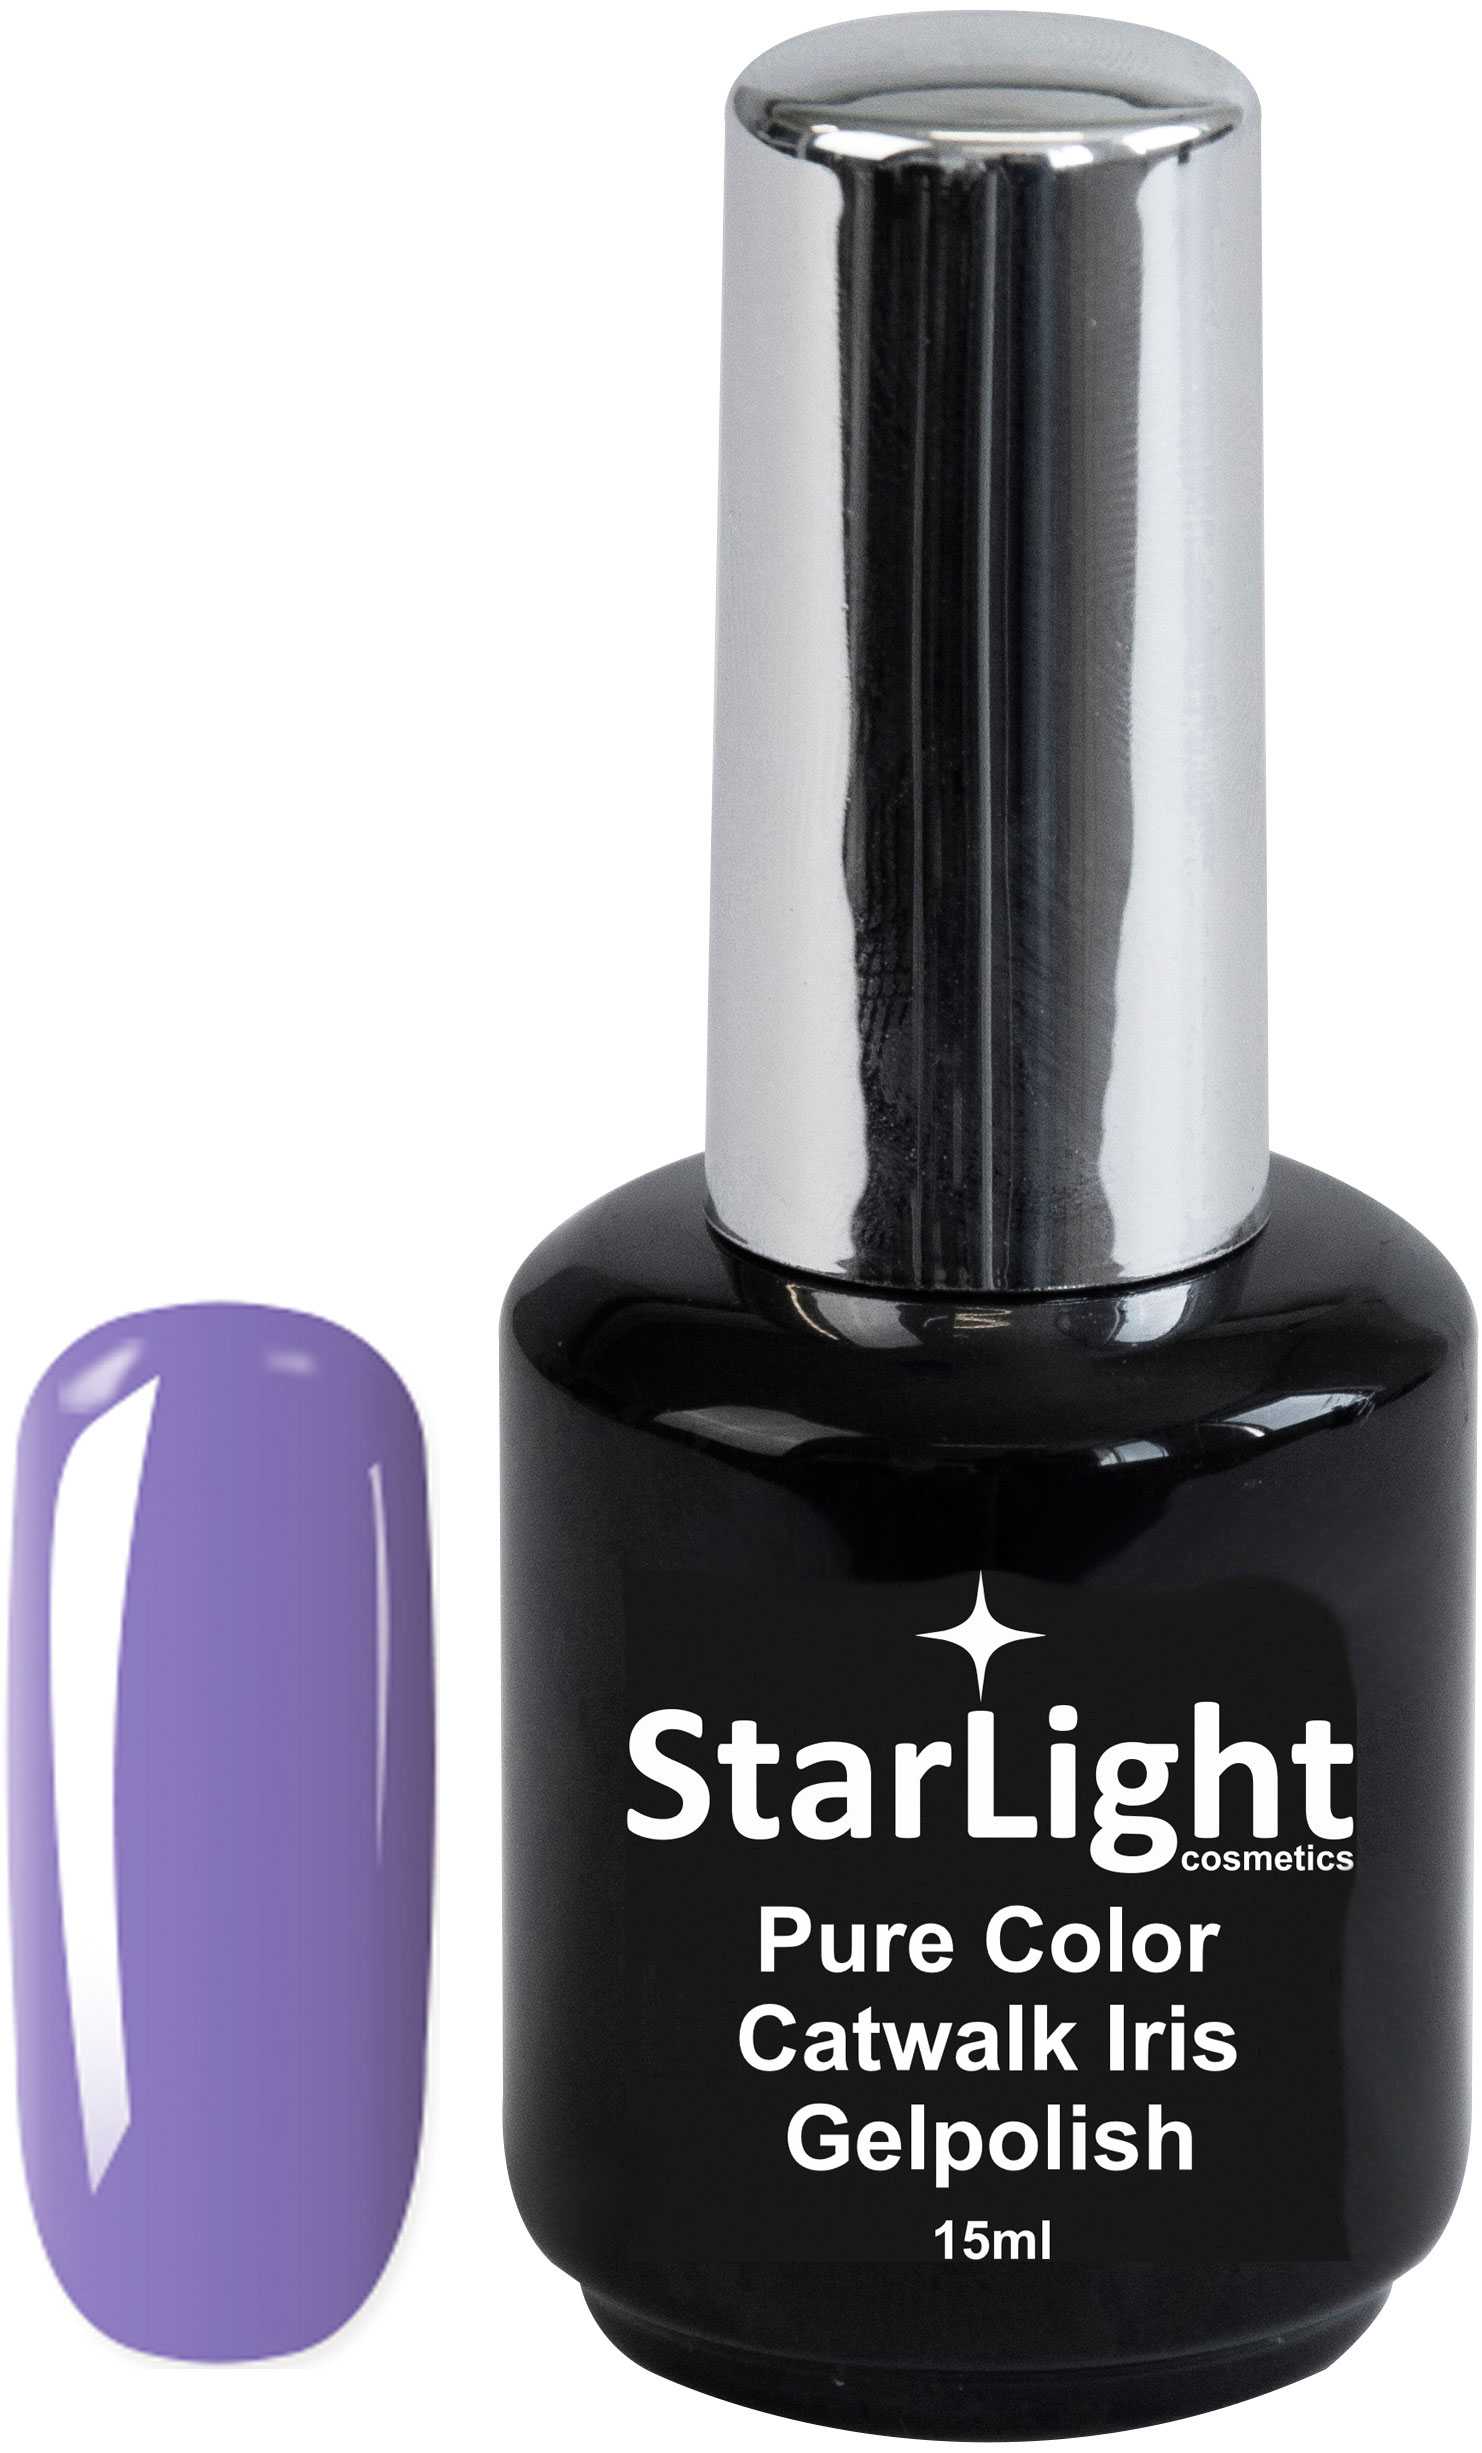 Naglar Gelpolish Pure Color Catwalk Iris - 15 ml